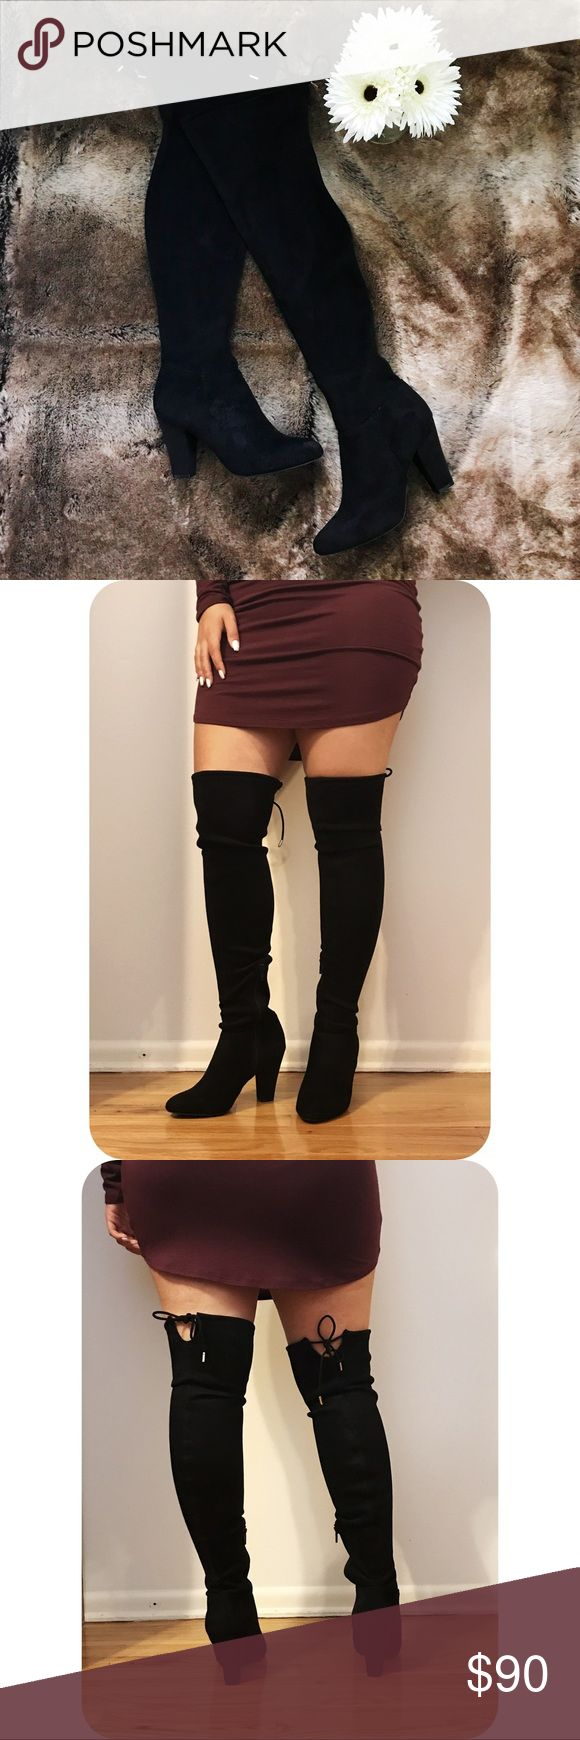 Black Suede Thigh High Boots **WORN ONCE** Call it Spring black suede thigh high boots // Heel Height: 3 inch // Size: 6 // No original box Call It Spring Shoes Over the Knee Boots